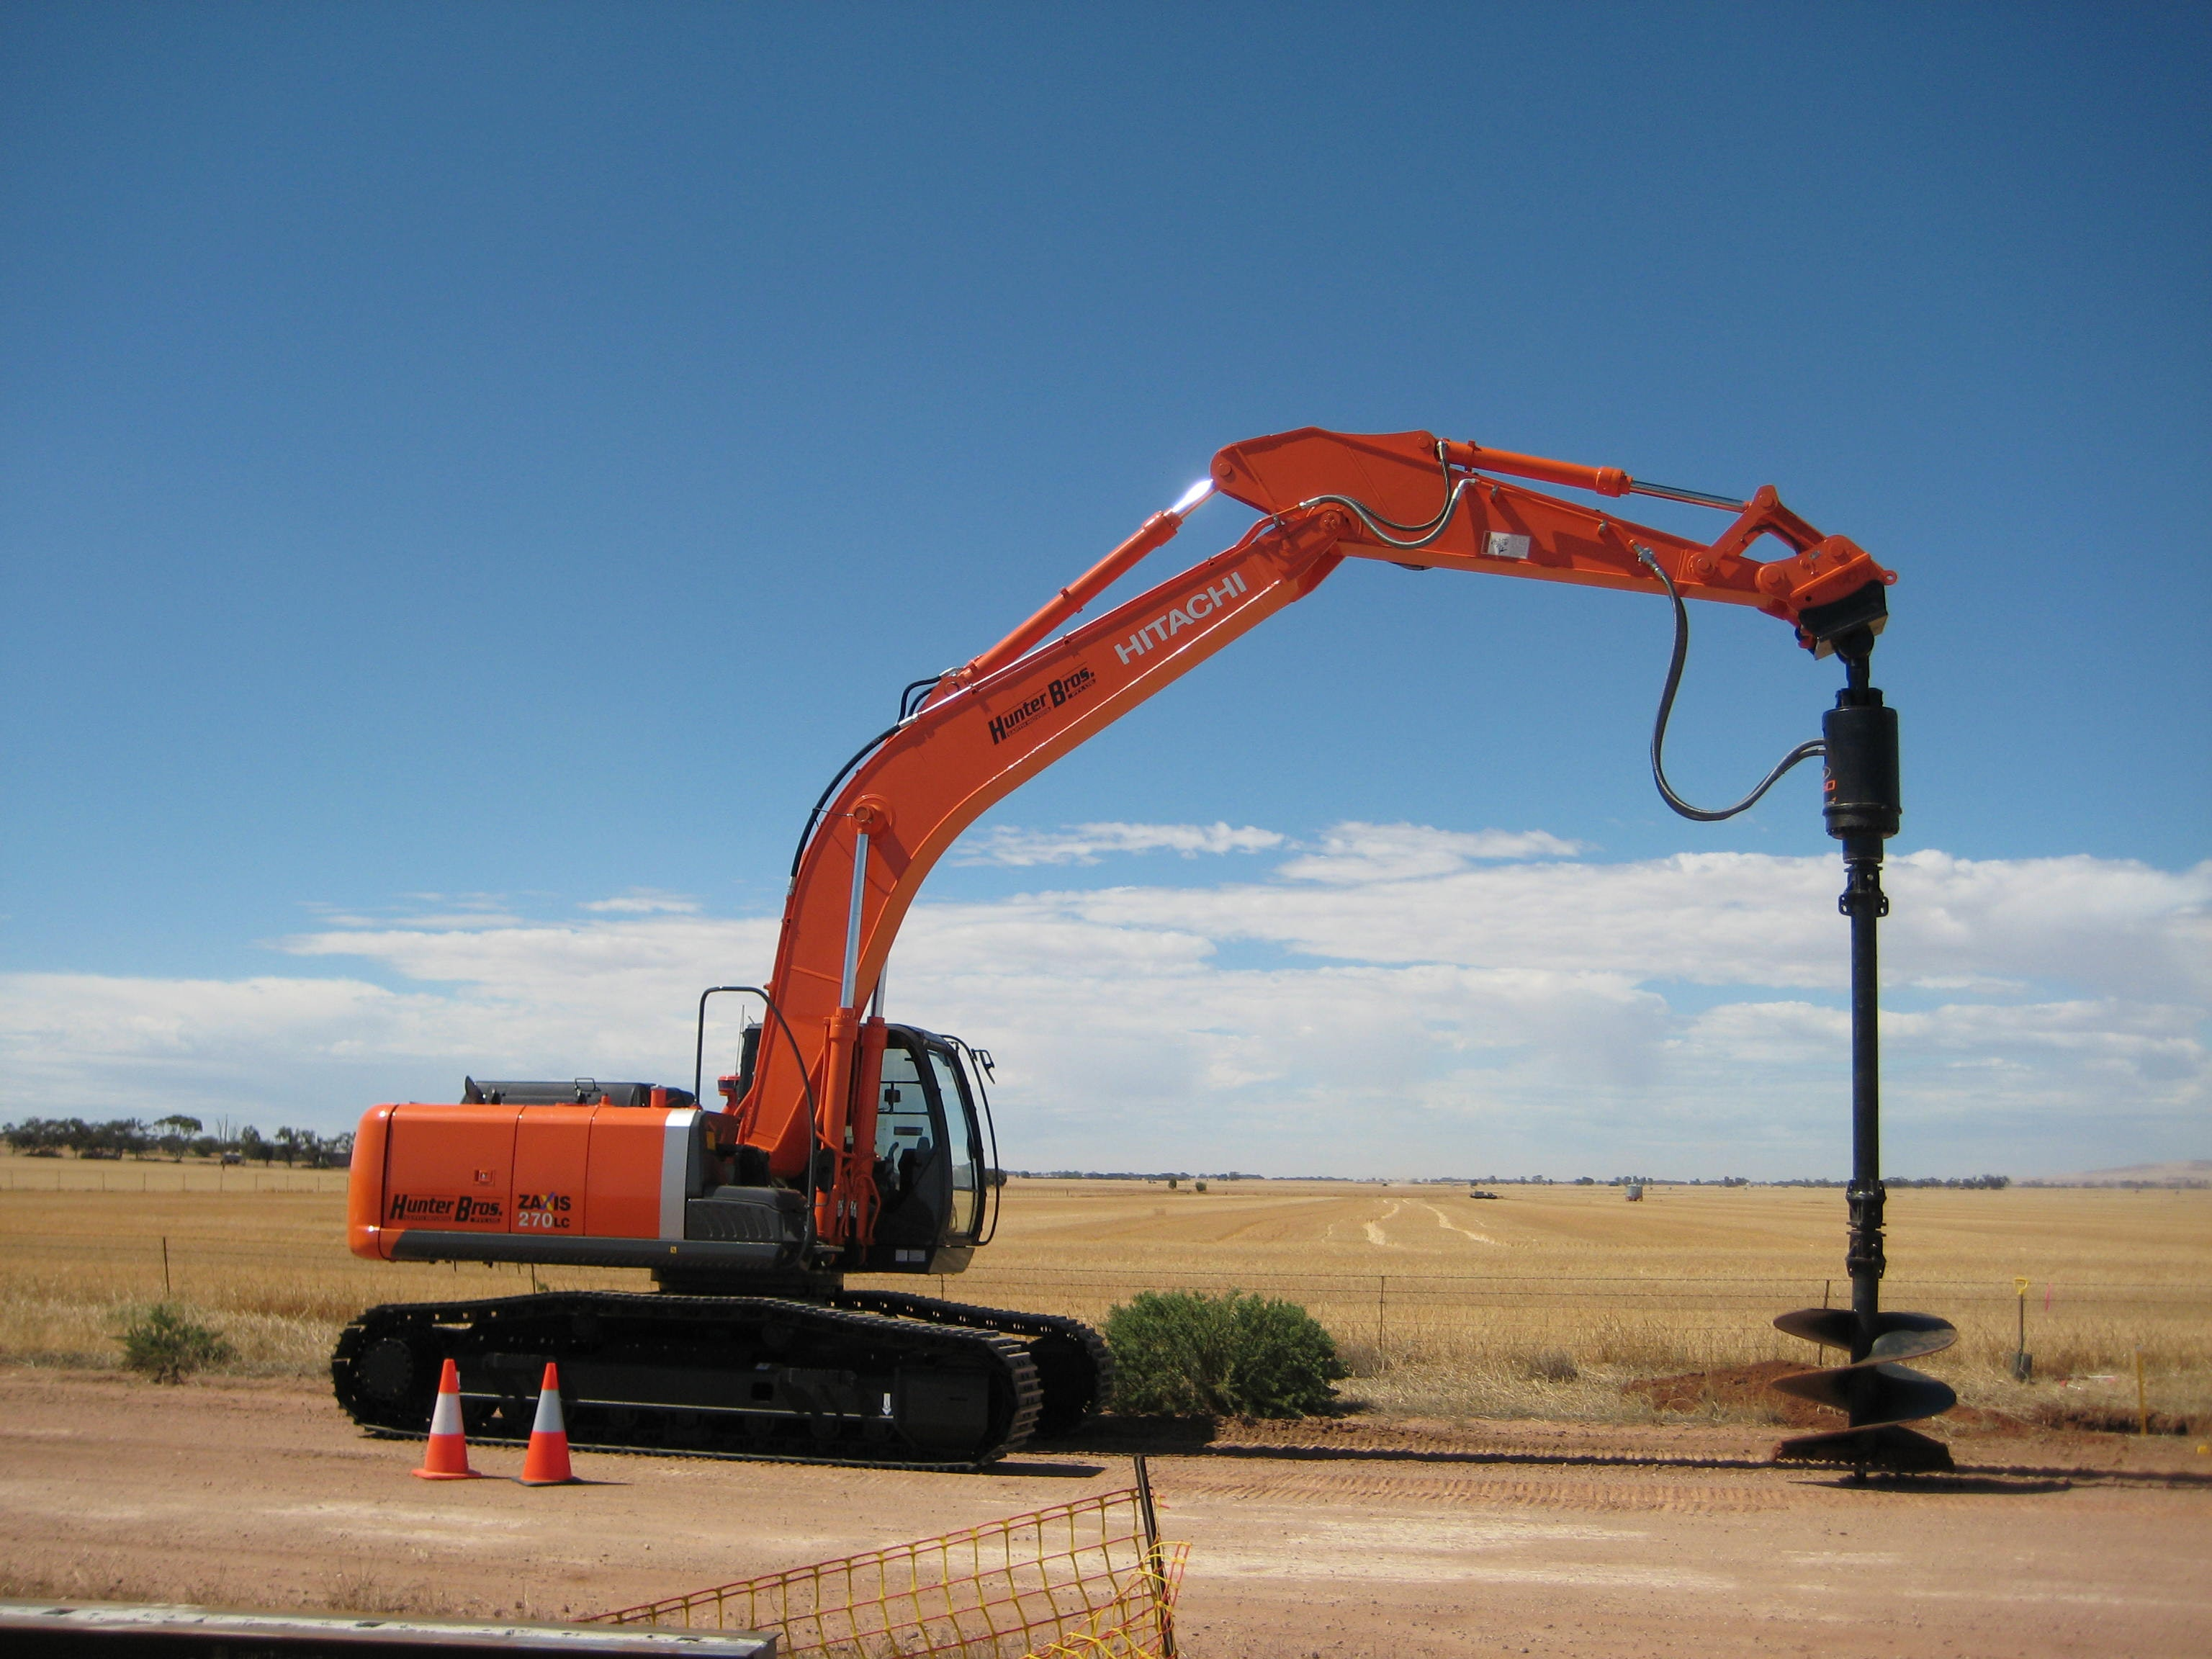 20t - 29t Excavator for hire - Hunter Bros Earth Movers Pty Ltd